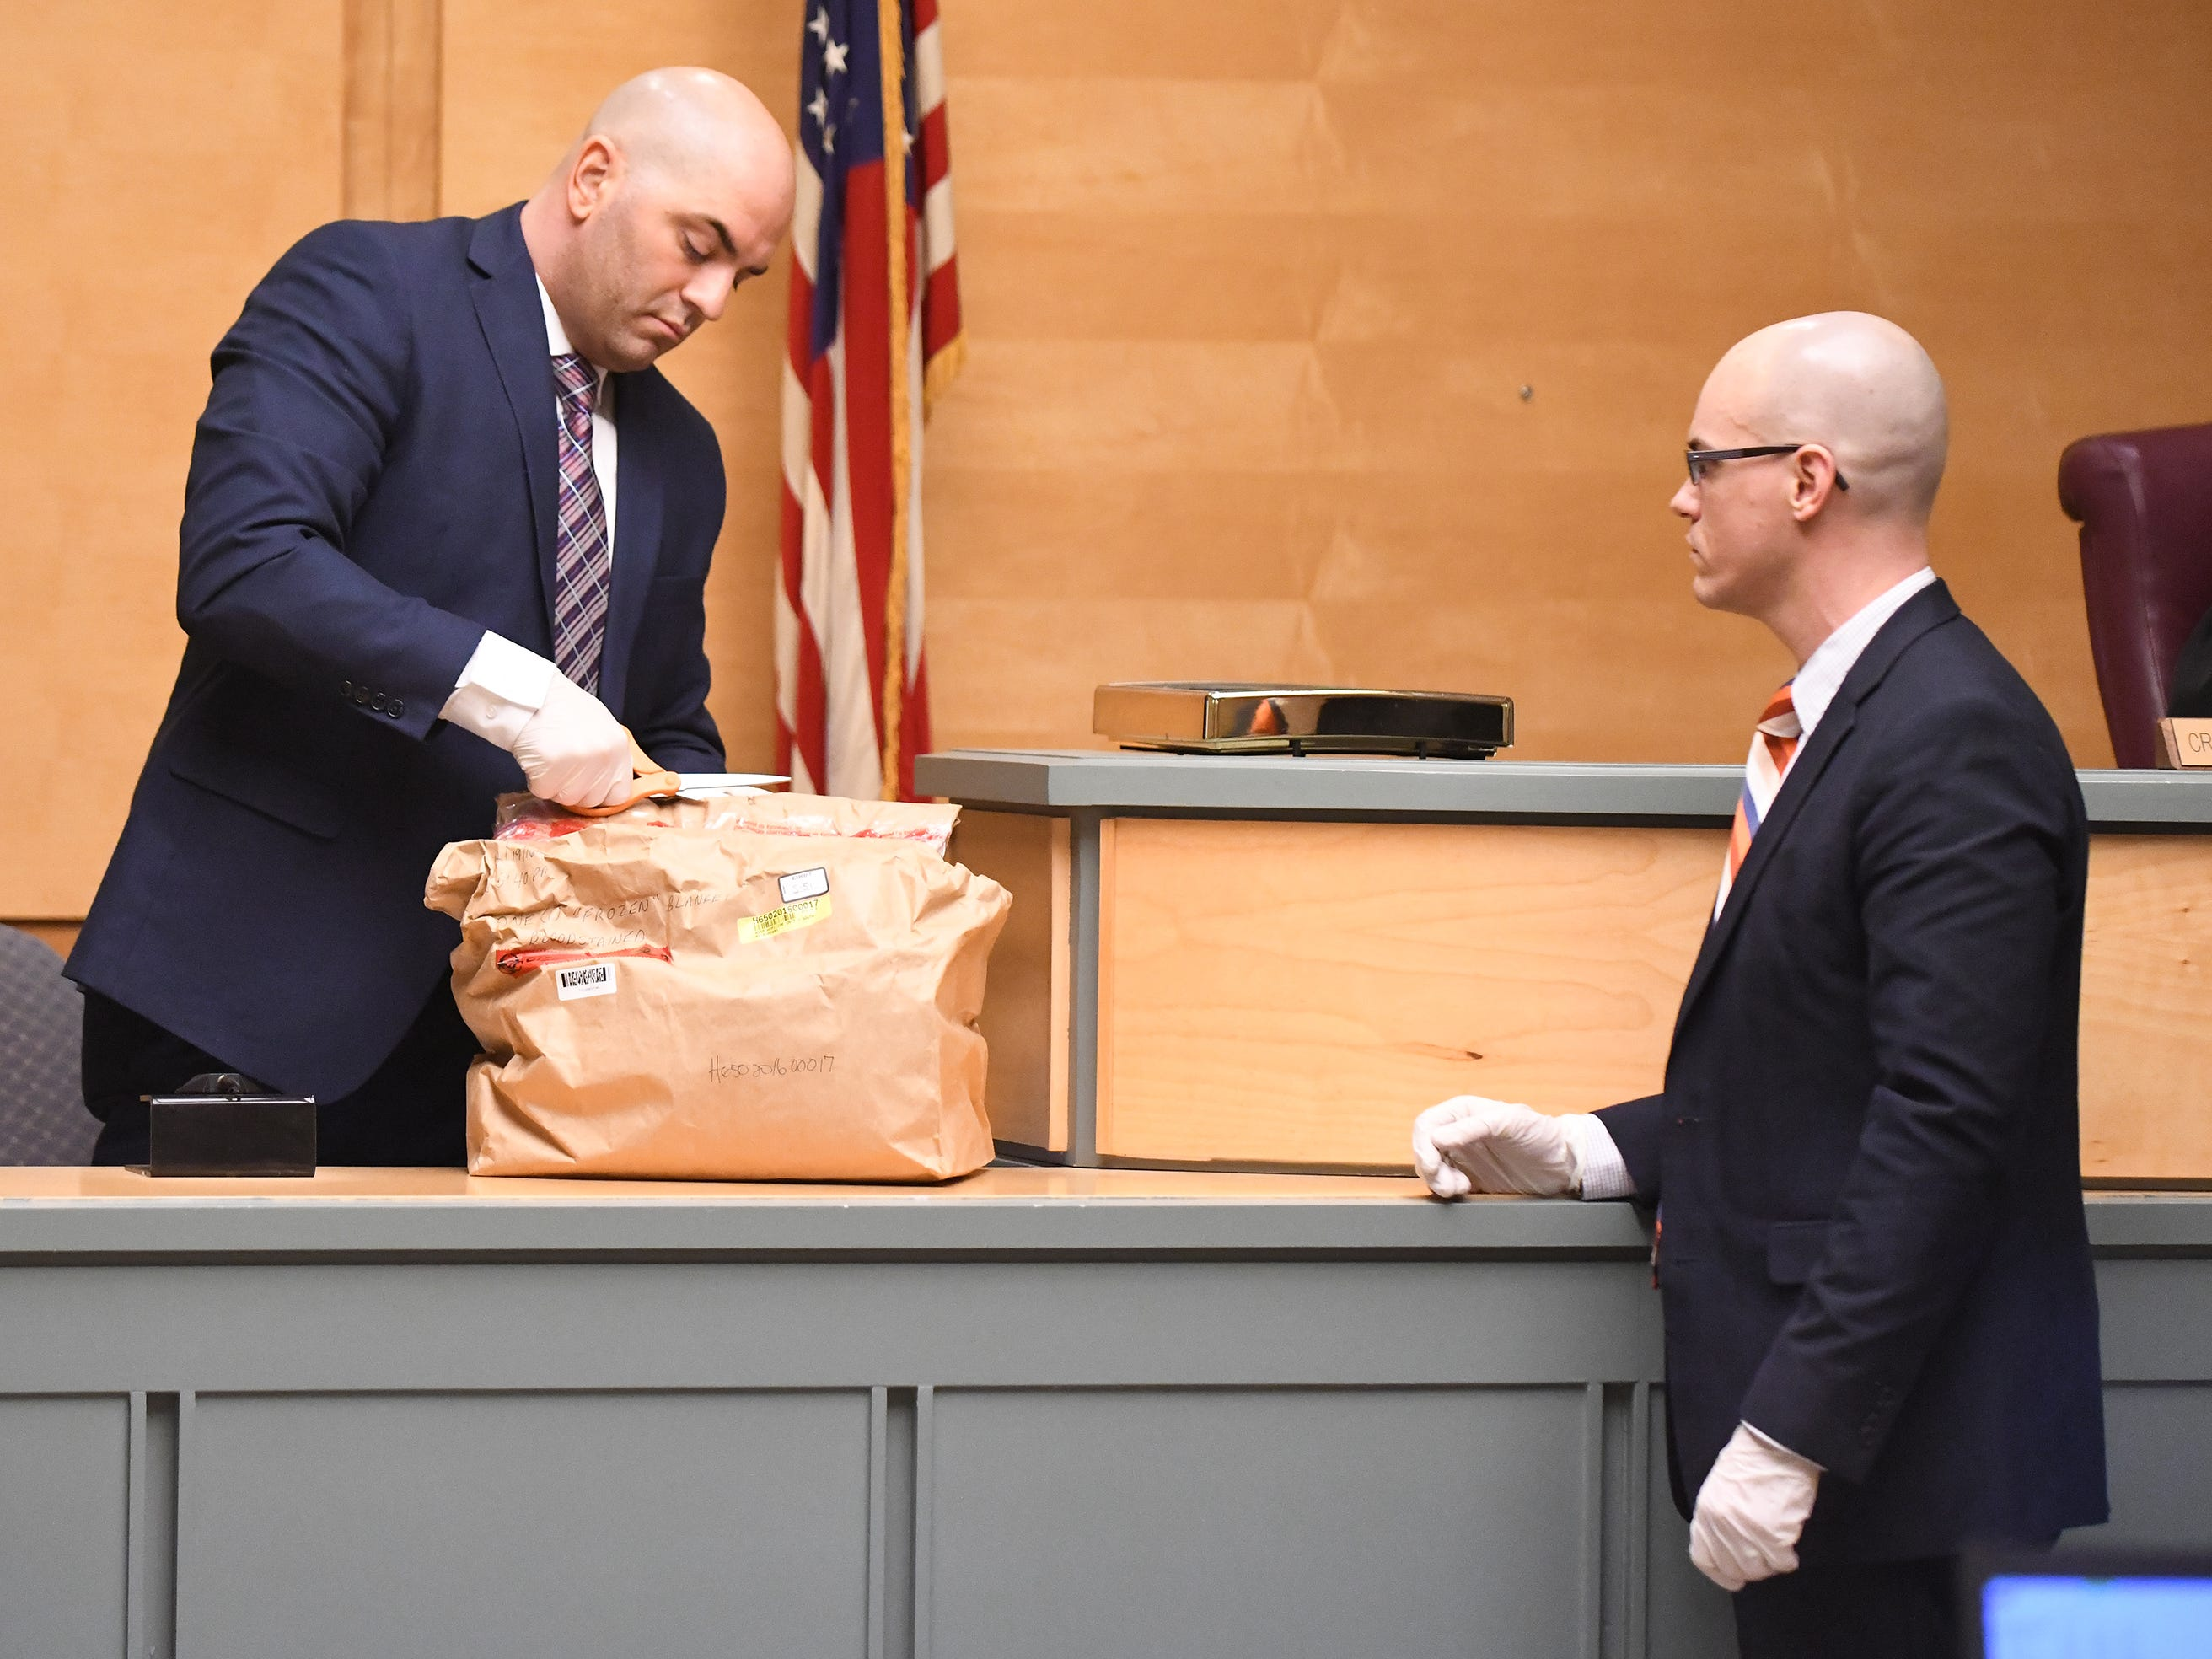 New Jersey State Police Detective Michael Hughes (left) and County Assistant Prosecutor Charles Wettstein prepare to show jurors the blanket that Tara O'Shea-Watson's body was found in during trial in Cumberland County Superior Court on Thursday, January 3, 2019.